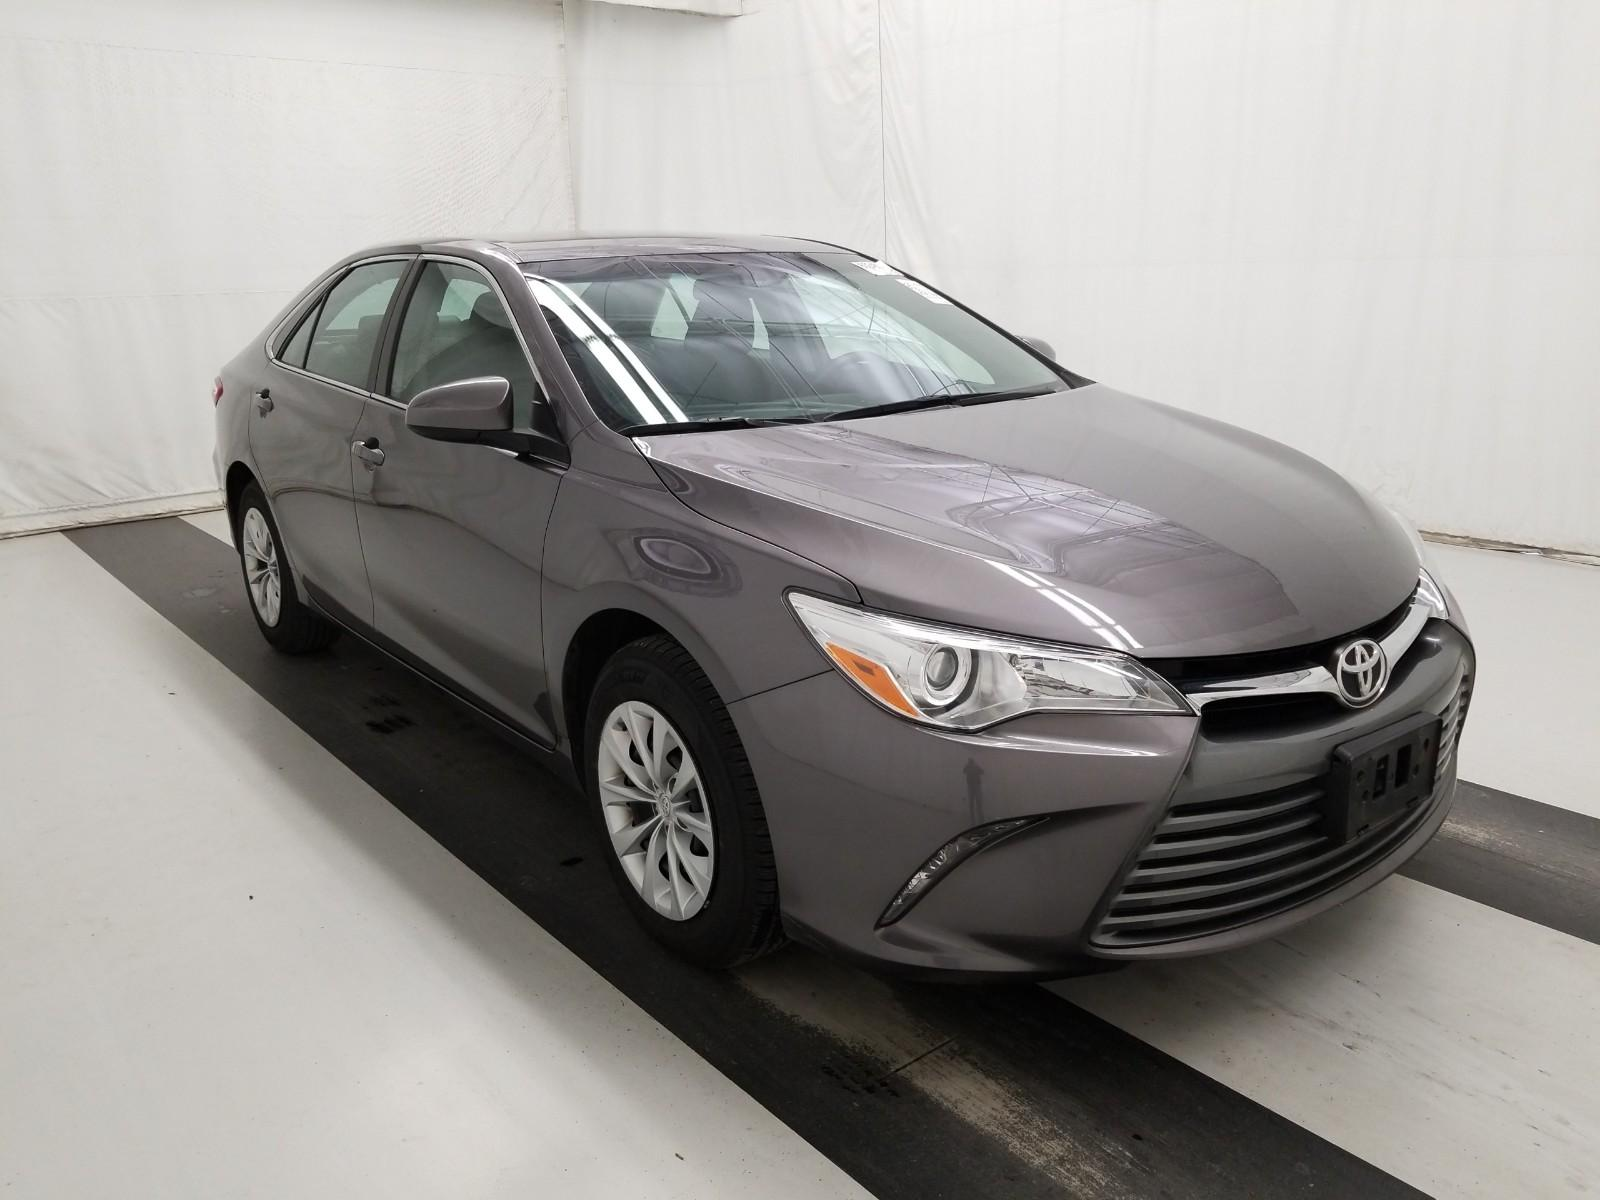 2016 Toyota Camry LE 28,600 MILES! $14,900